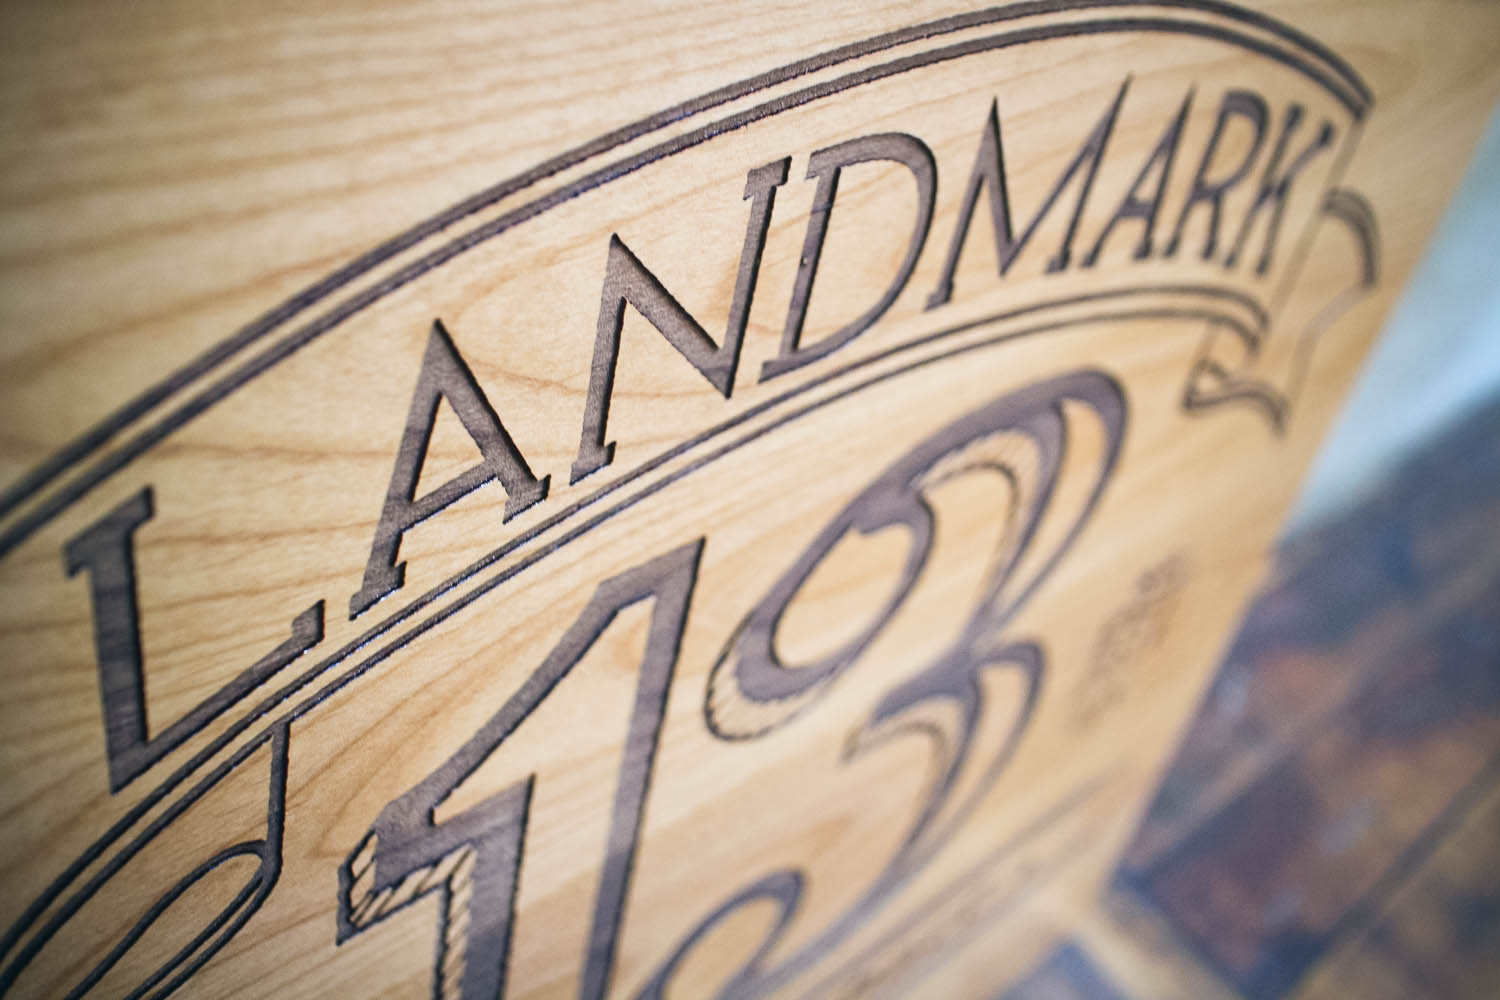 Landmark 13 wood etched sign